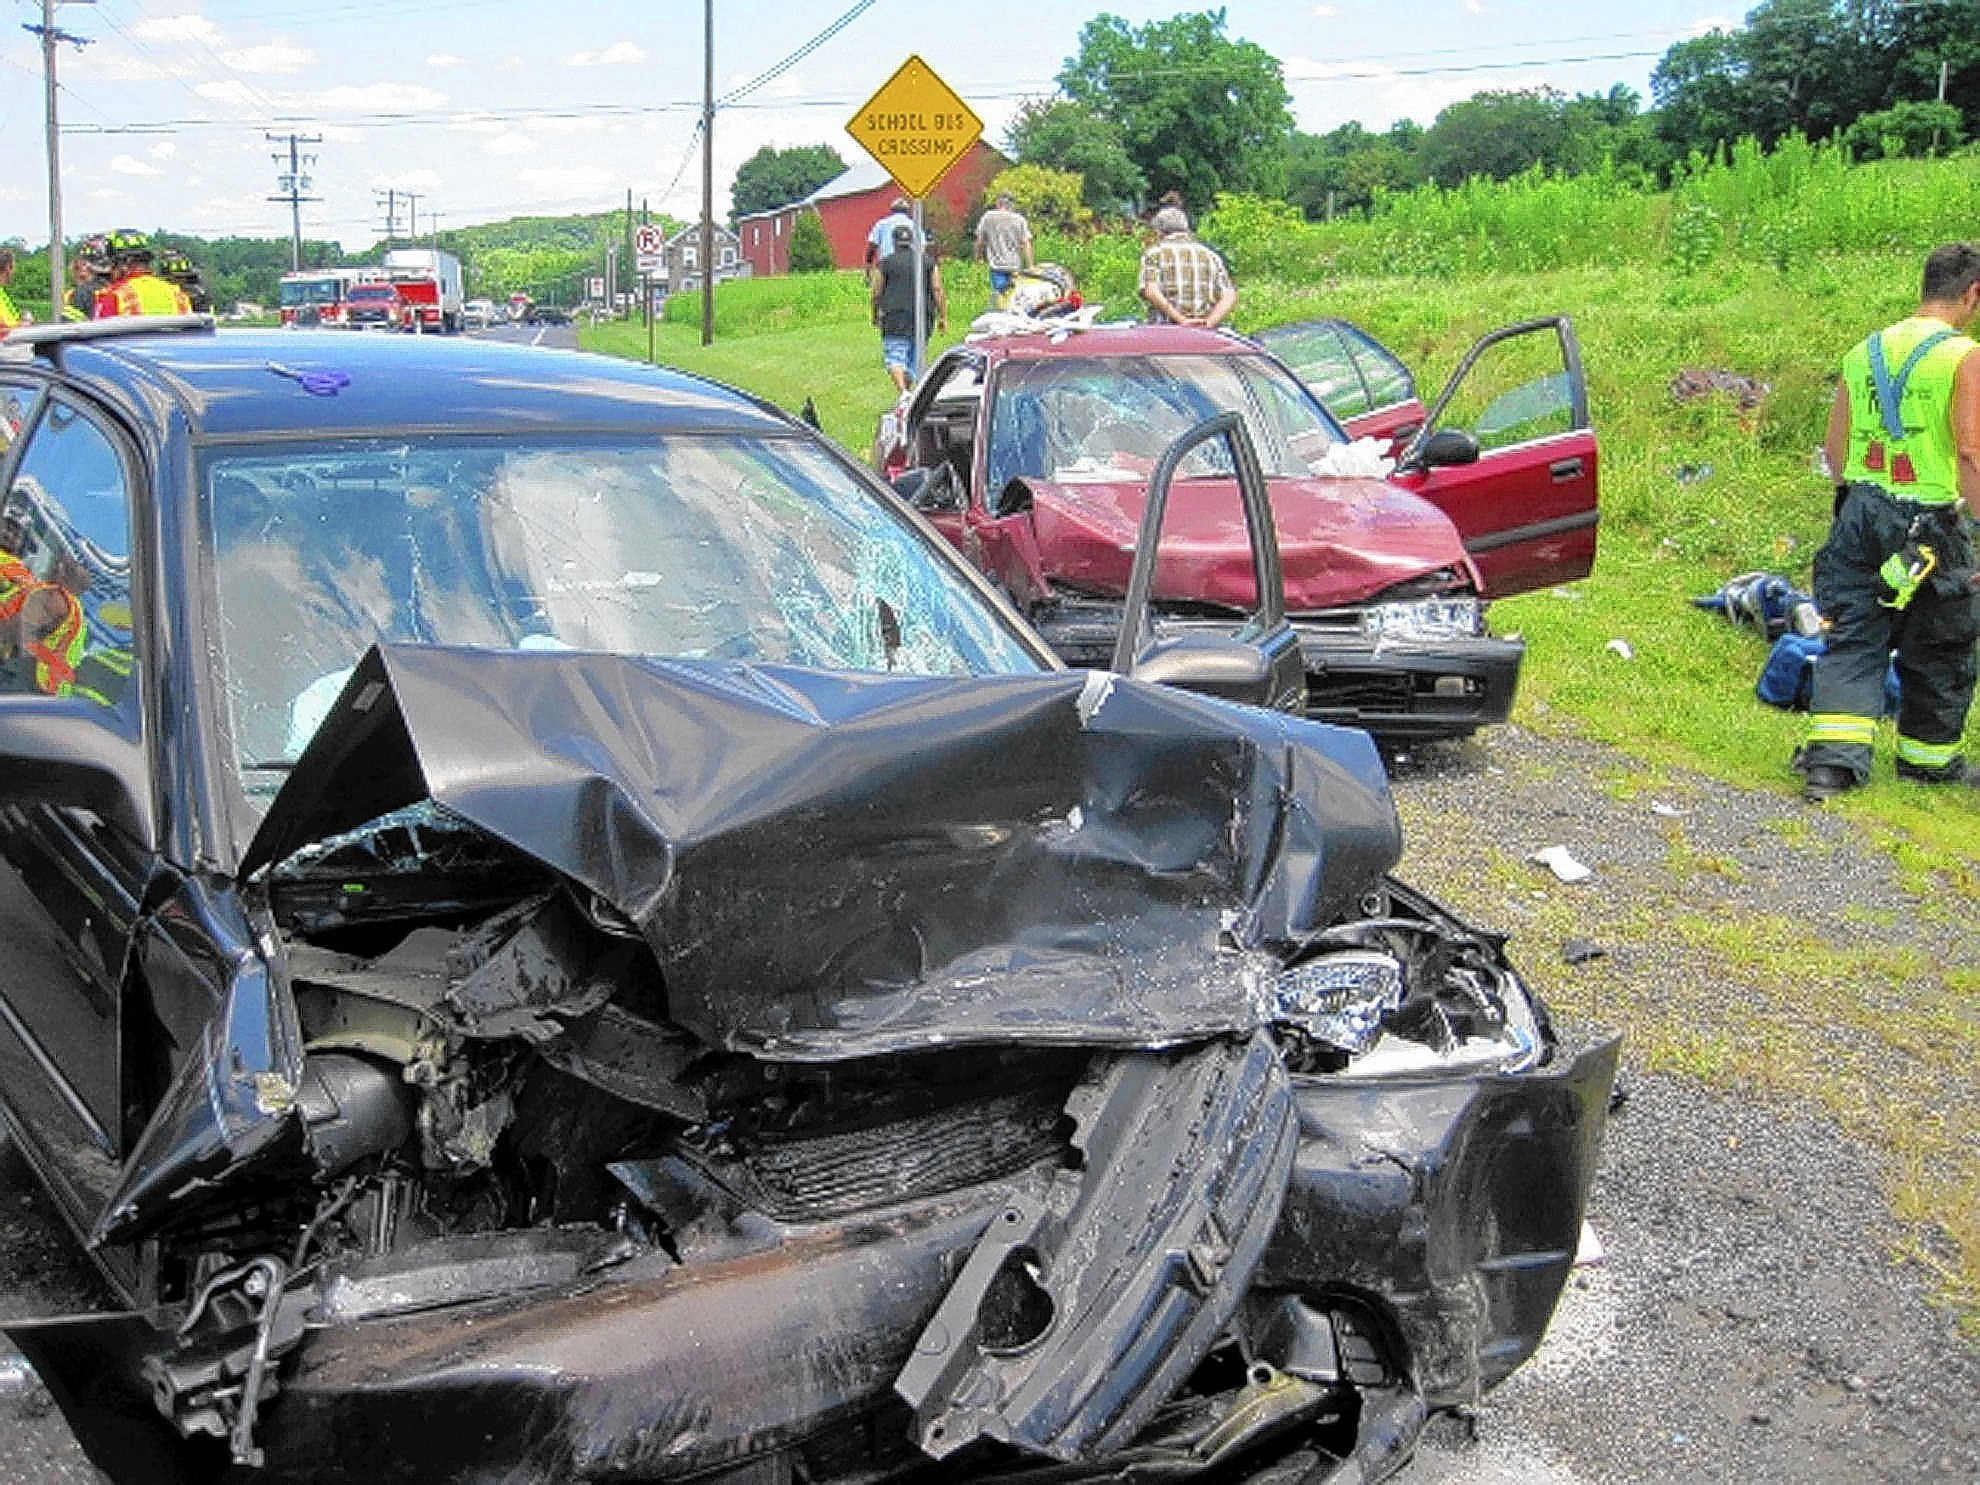 Quakertown-area woman killed in Route 100 head-on crash - The